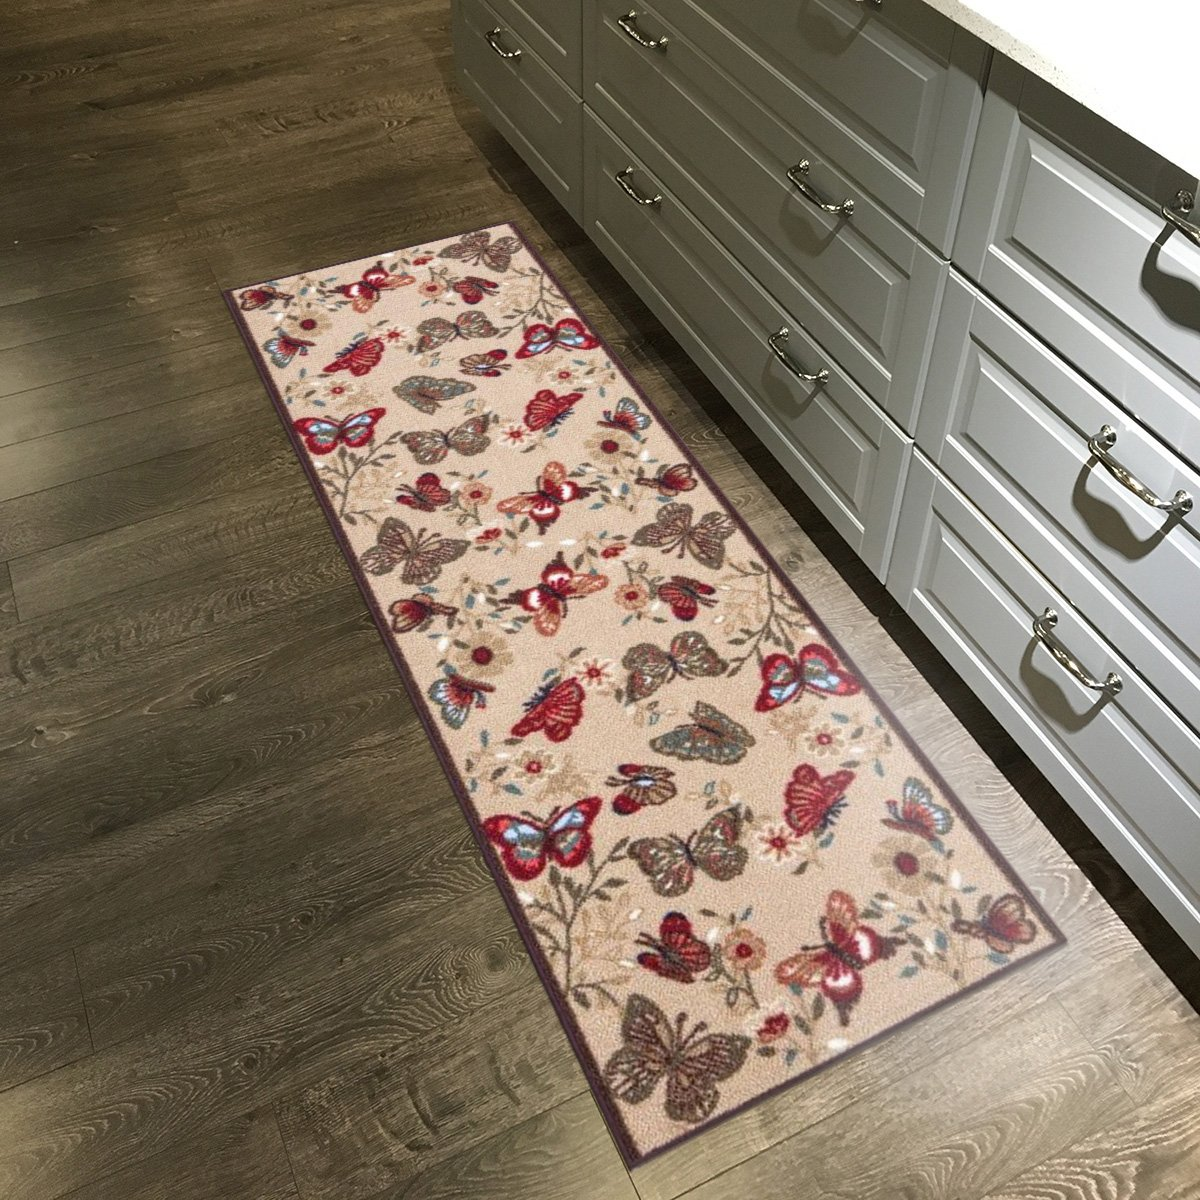 Custom Size Multicolor Butterflies Non-Slip Rubber Backed Hallway Carpet Runner Rug | 22-inch x 1-Foot Kapaqua 1206-1